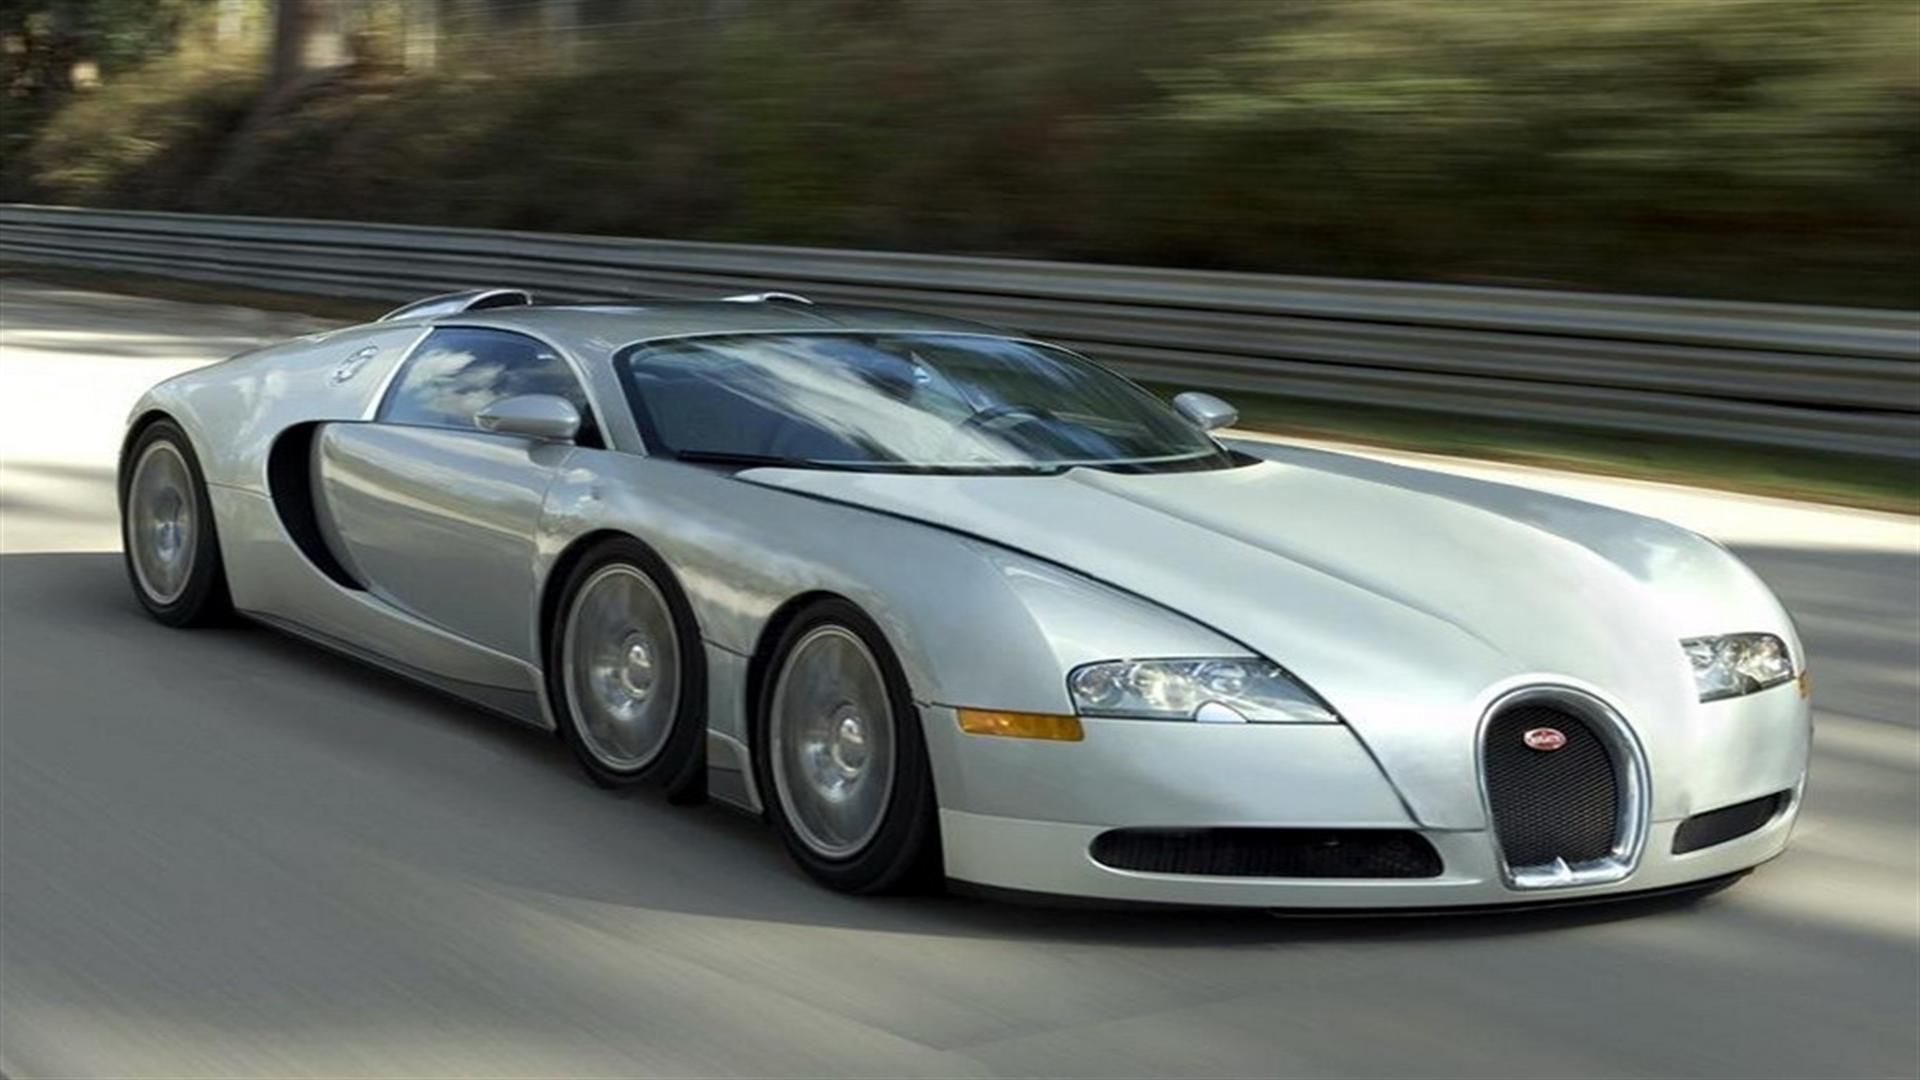 Bugatti Cars Wallpapers 1080p Bugatti Iphone Wallpaper Hd: Bugatti-wallpaper-hd_for_mobile